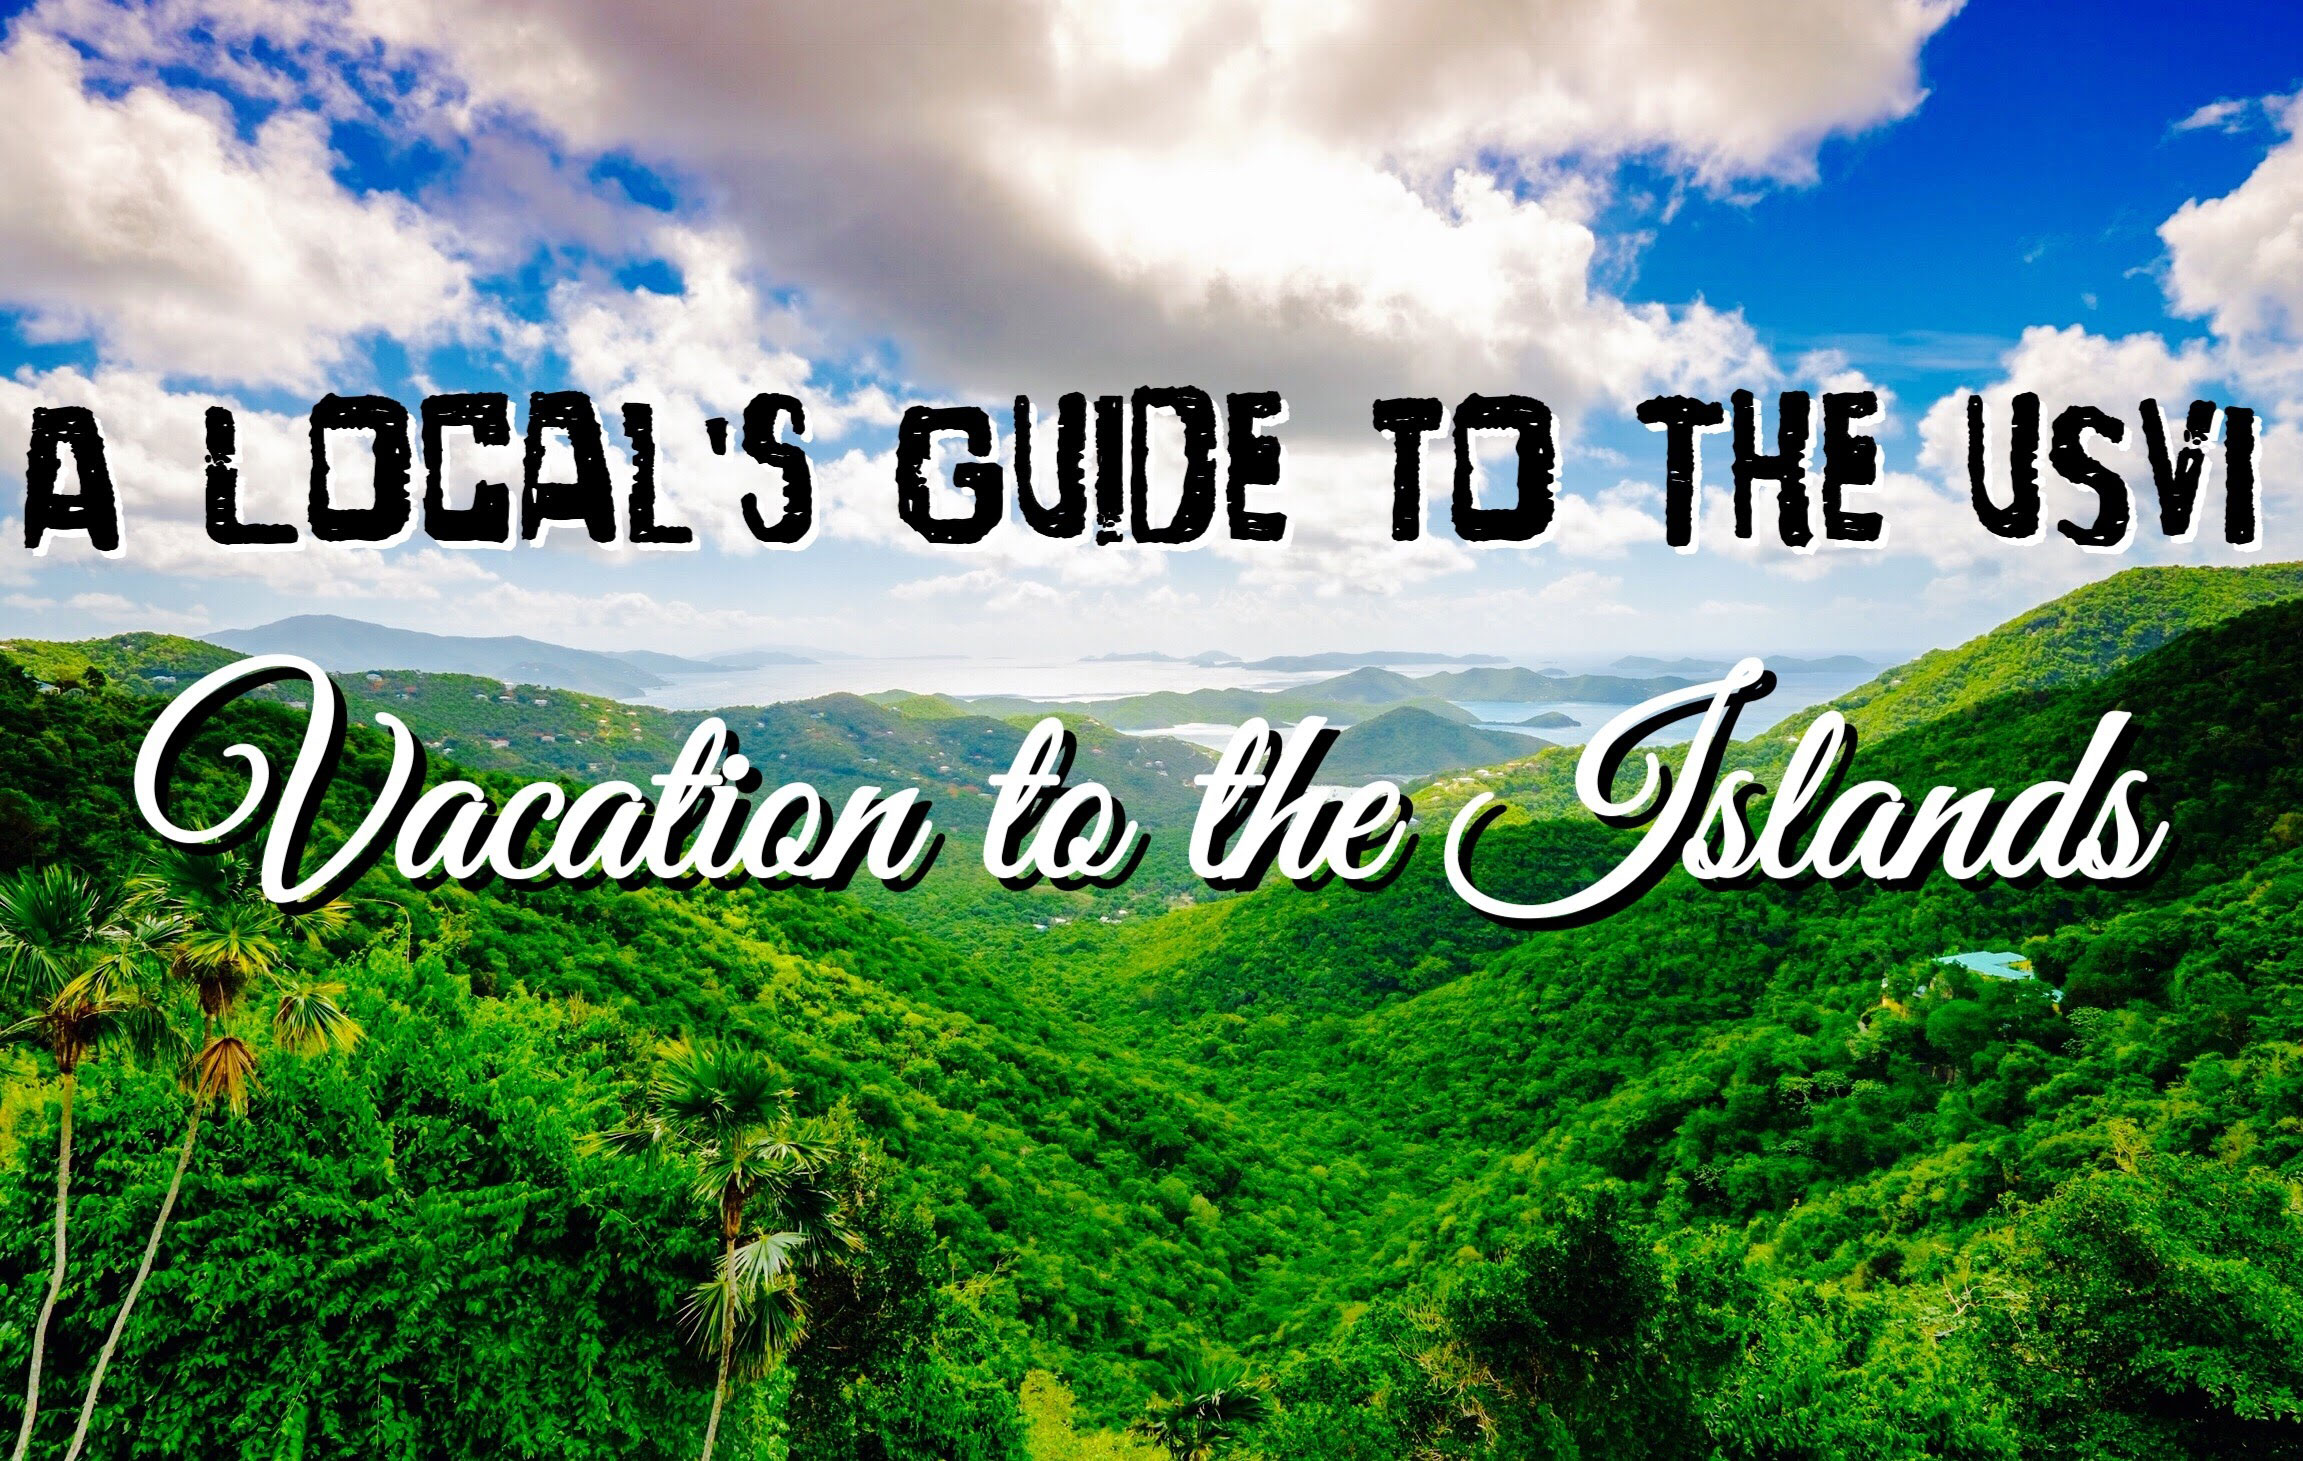 A Local's Guide to the US Virgin Islands: Vacation to the Islands